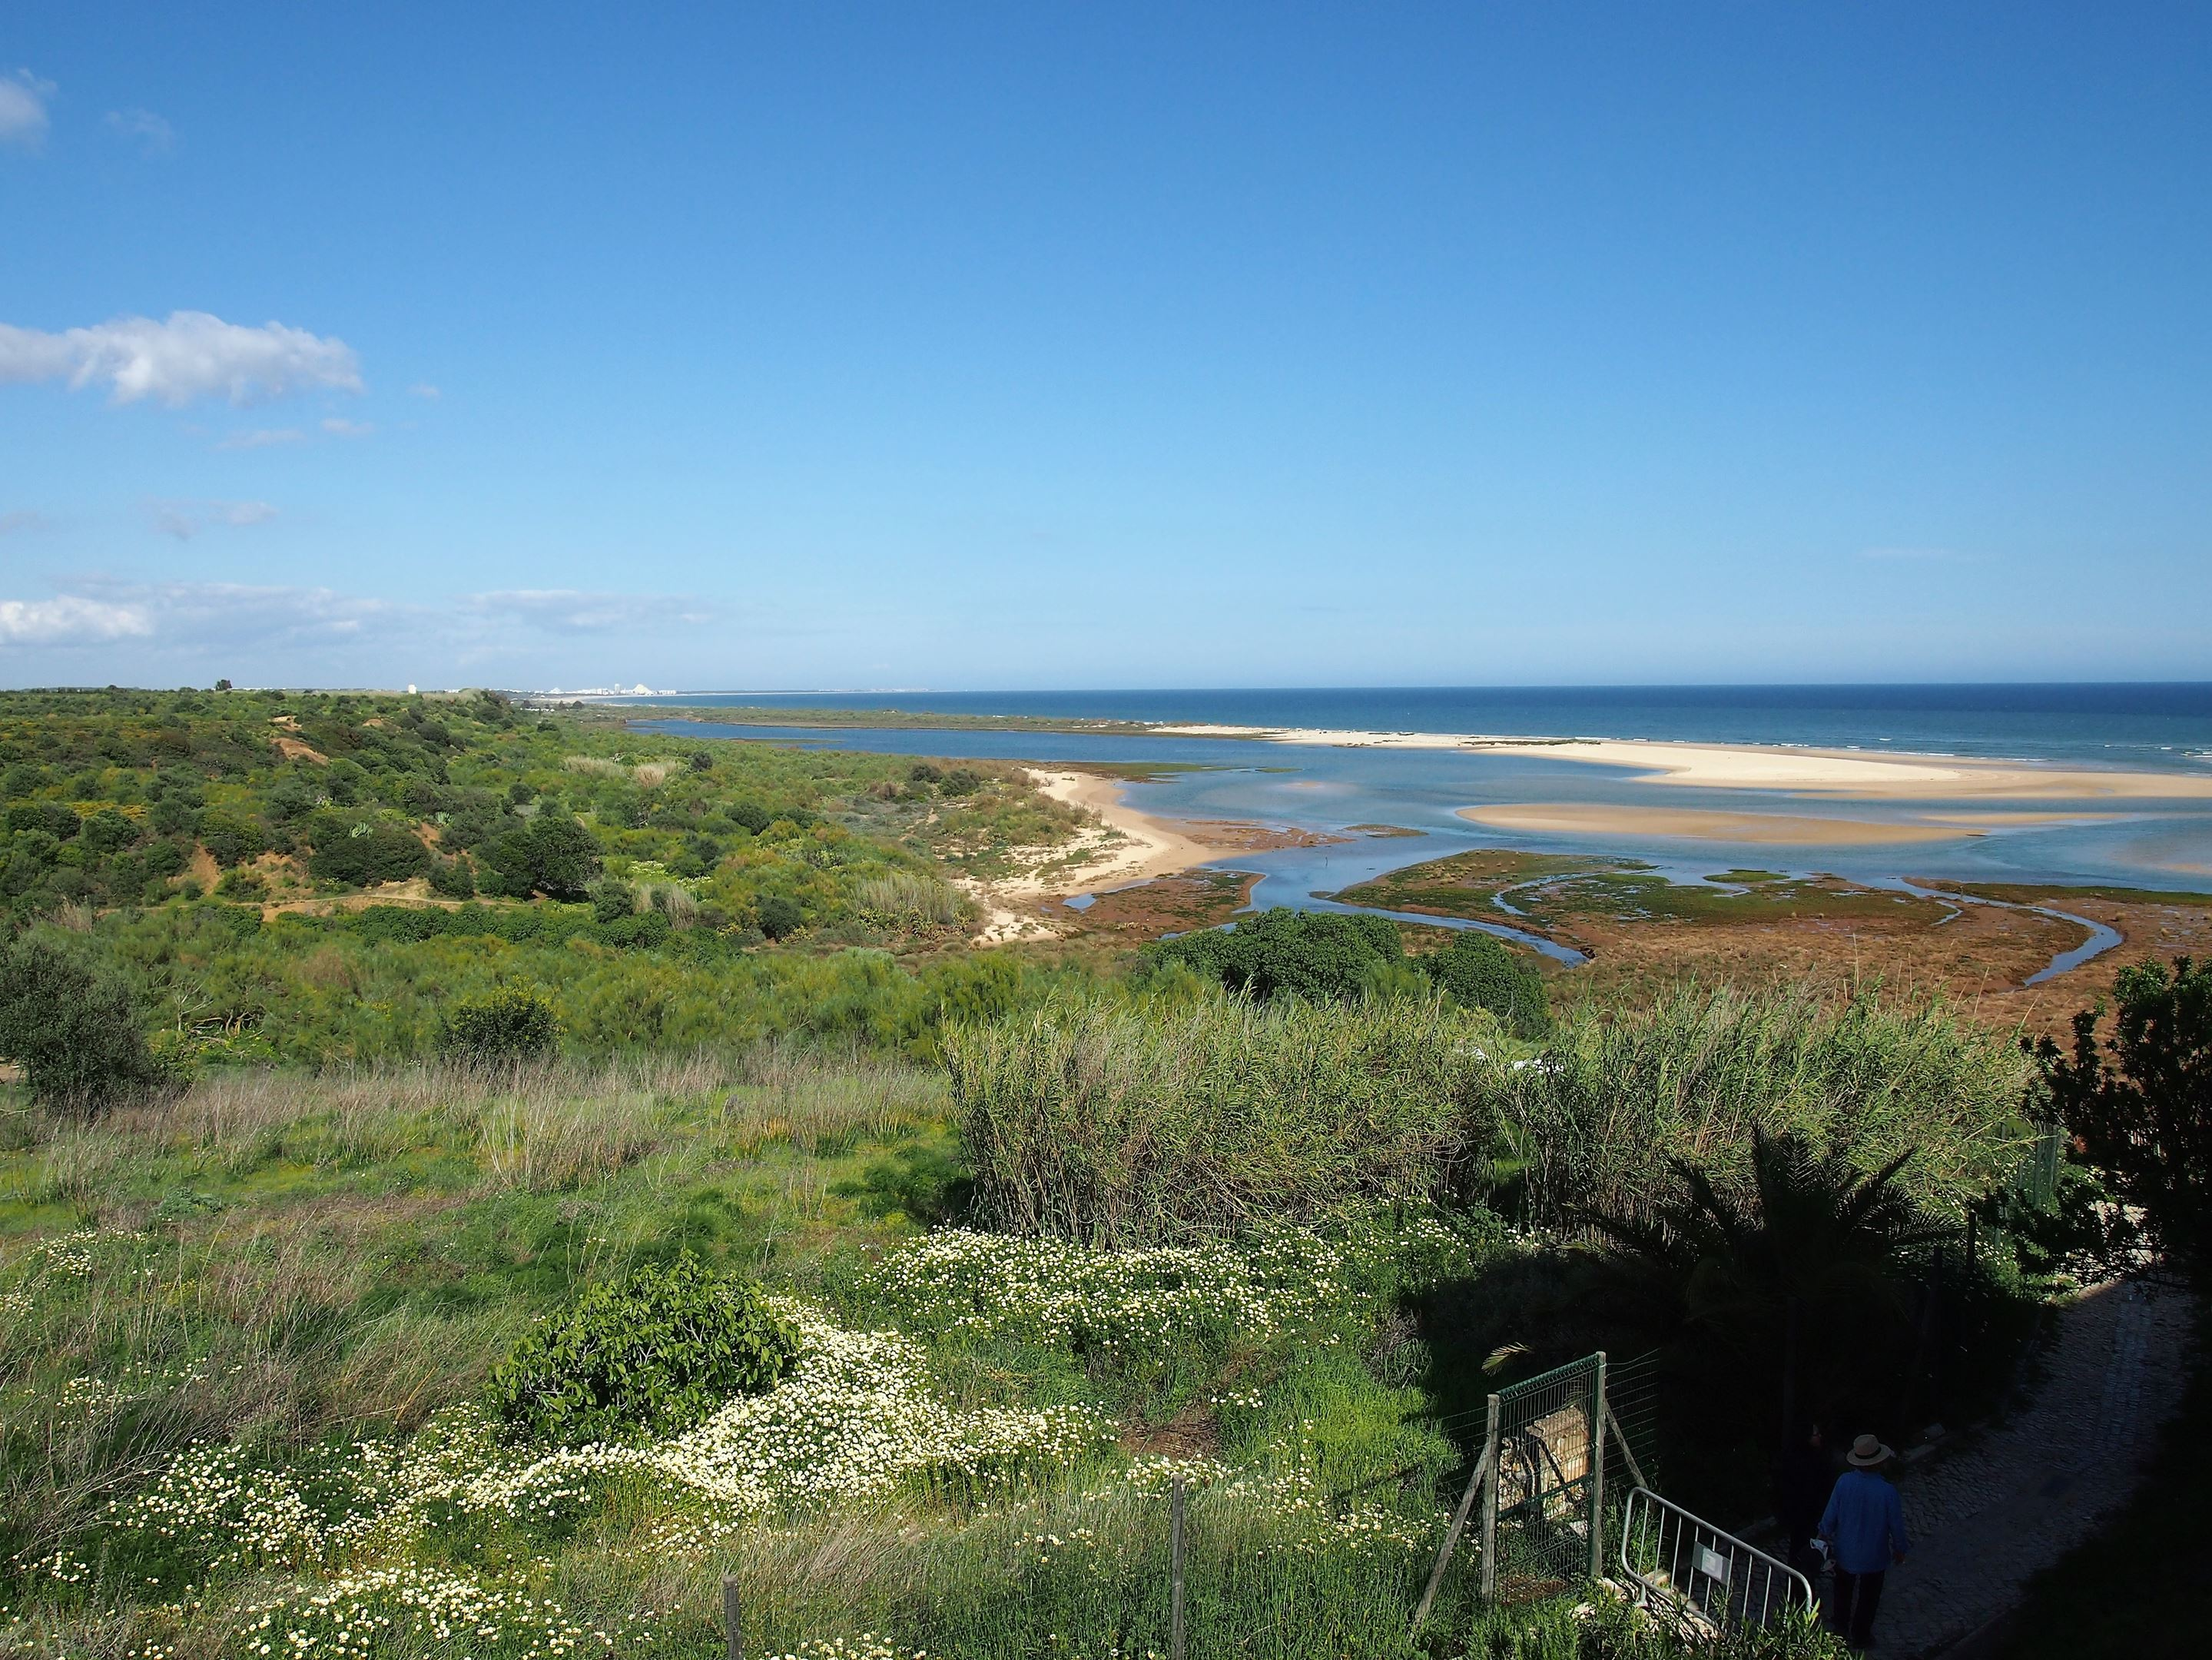 The Ria Formosa from Cacela Velha near Tavira